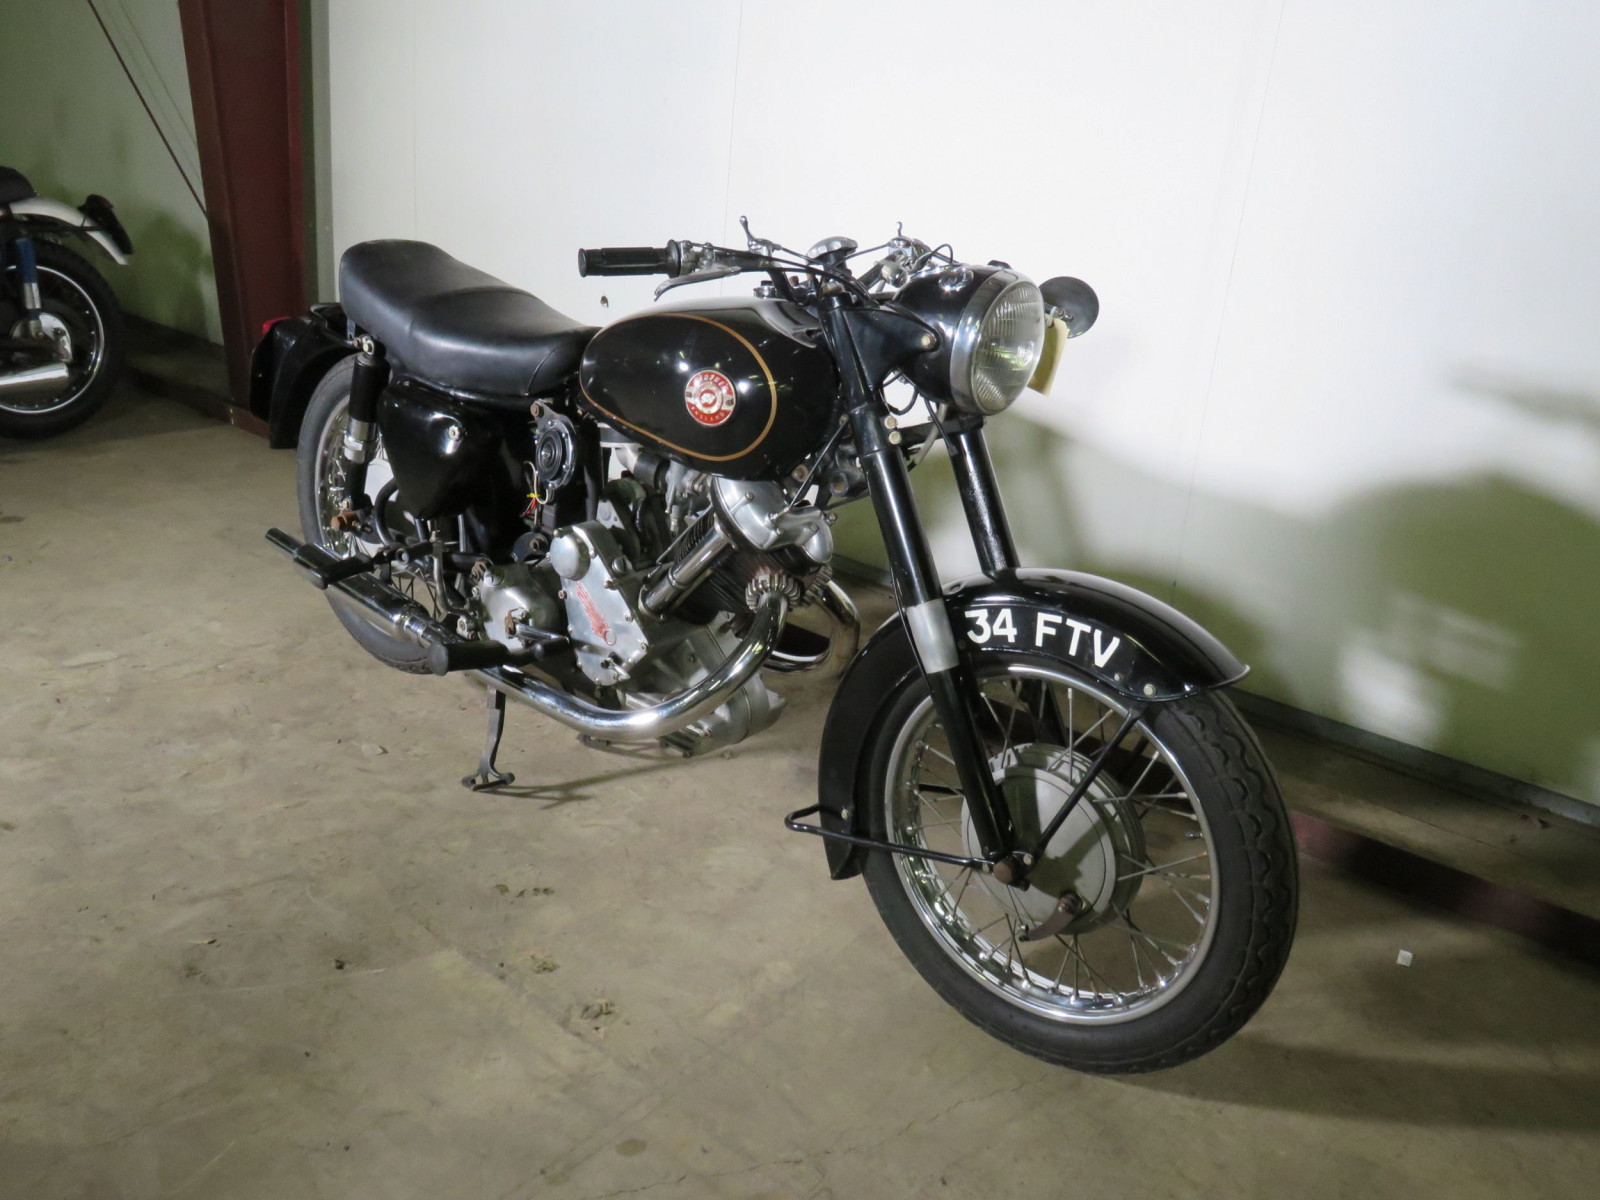 1959 Panther Model 120 Motorcycle - Image 1